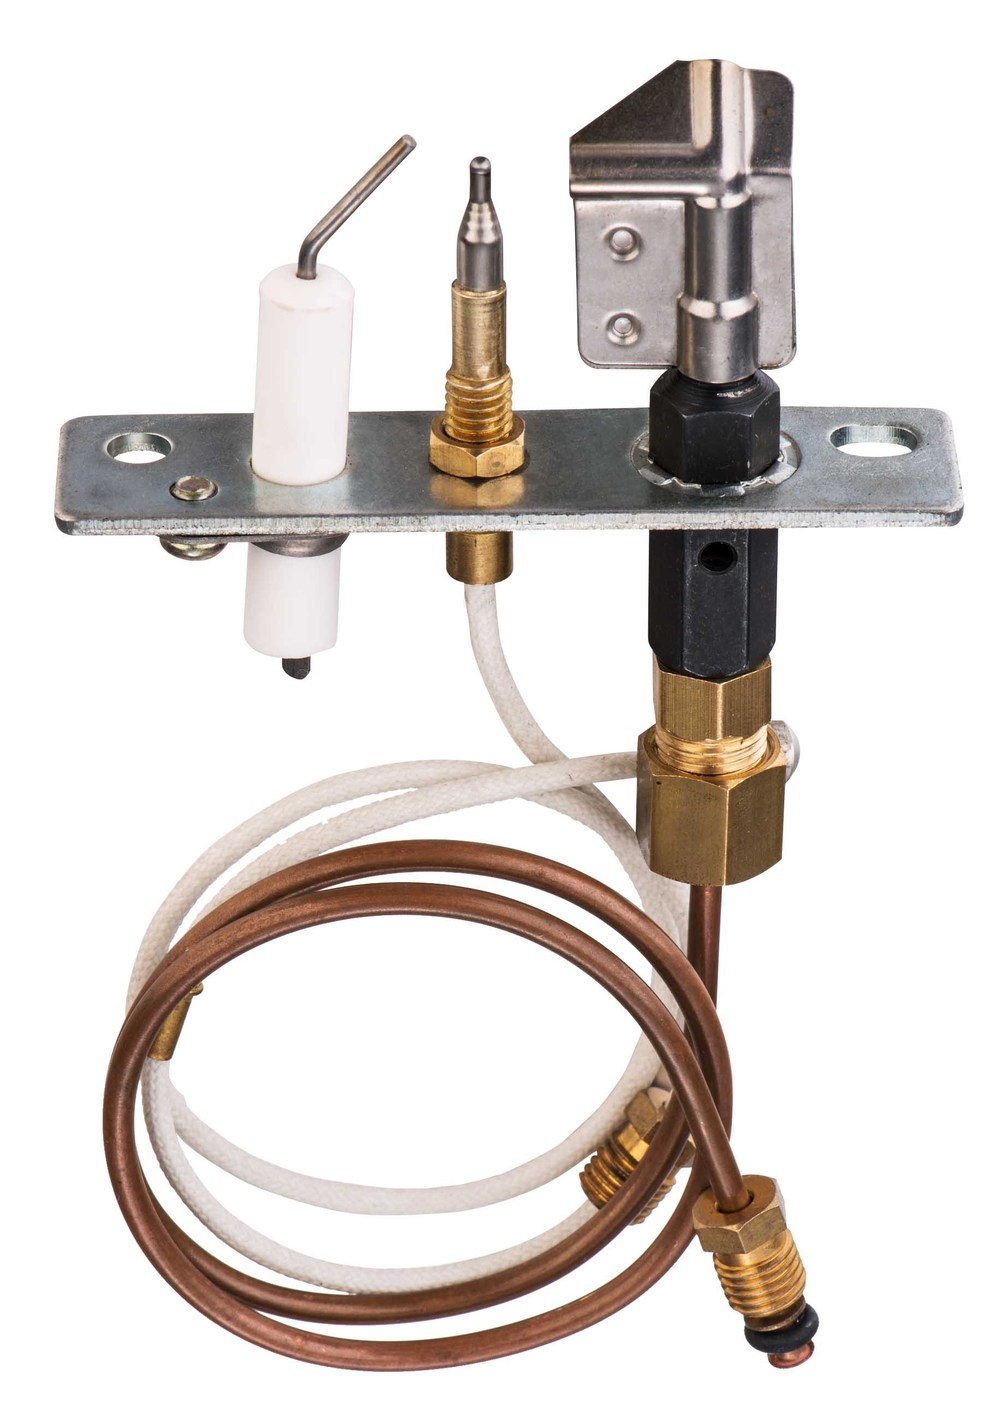 Pilot Thermocouple Assembly Ng Fires View Gas Fire Oxy Pilot Thermocouple Assembly Ng Fires